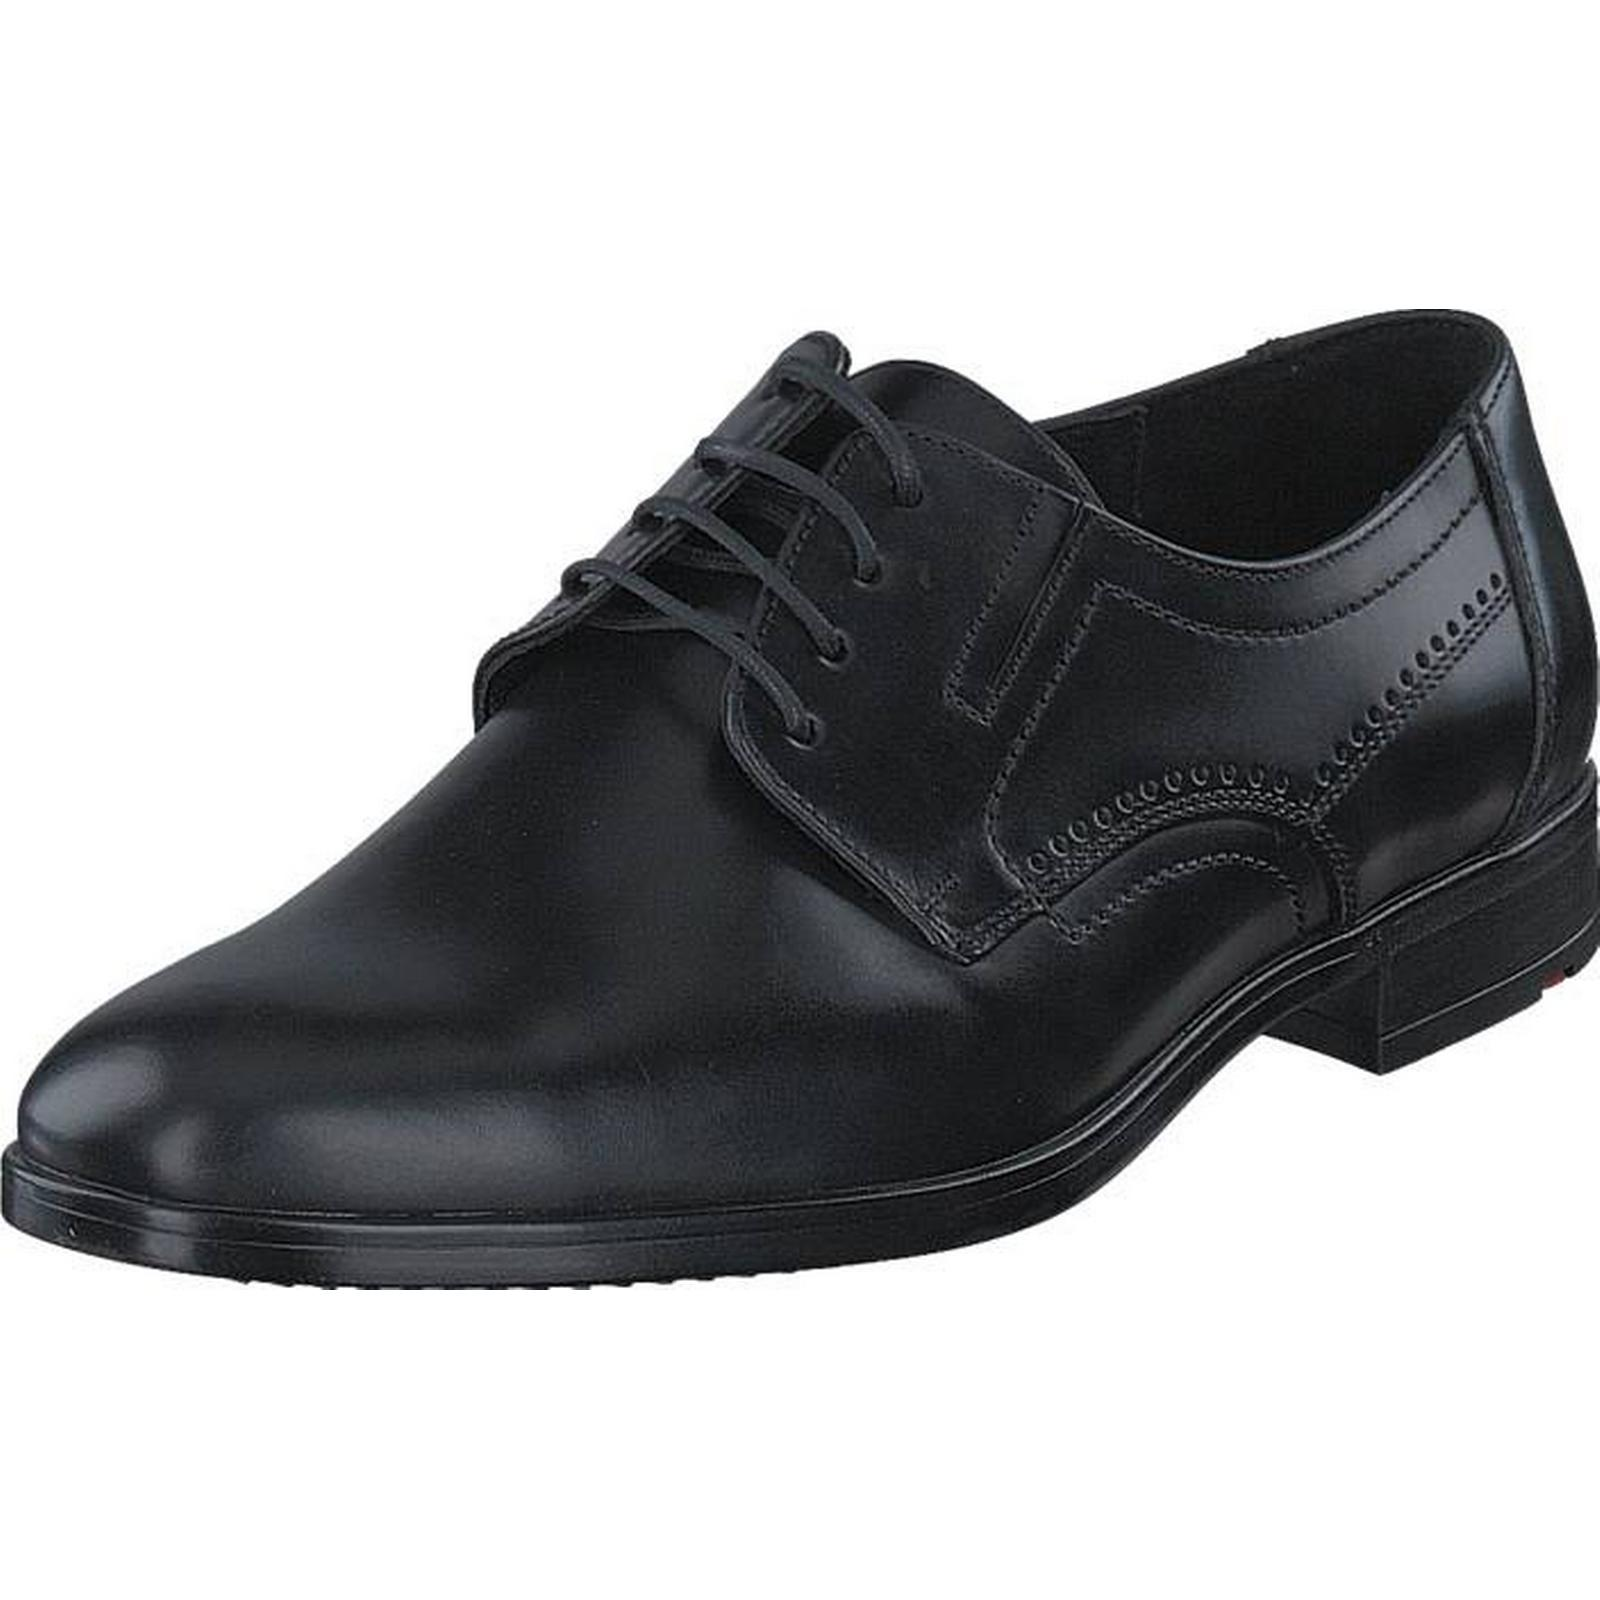 Lloyd 25-863-00 Schwarz, Shoes, Flats, Dress Shoes, Grey, Purple, Male, Male, Purple, 41 23e6c8